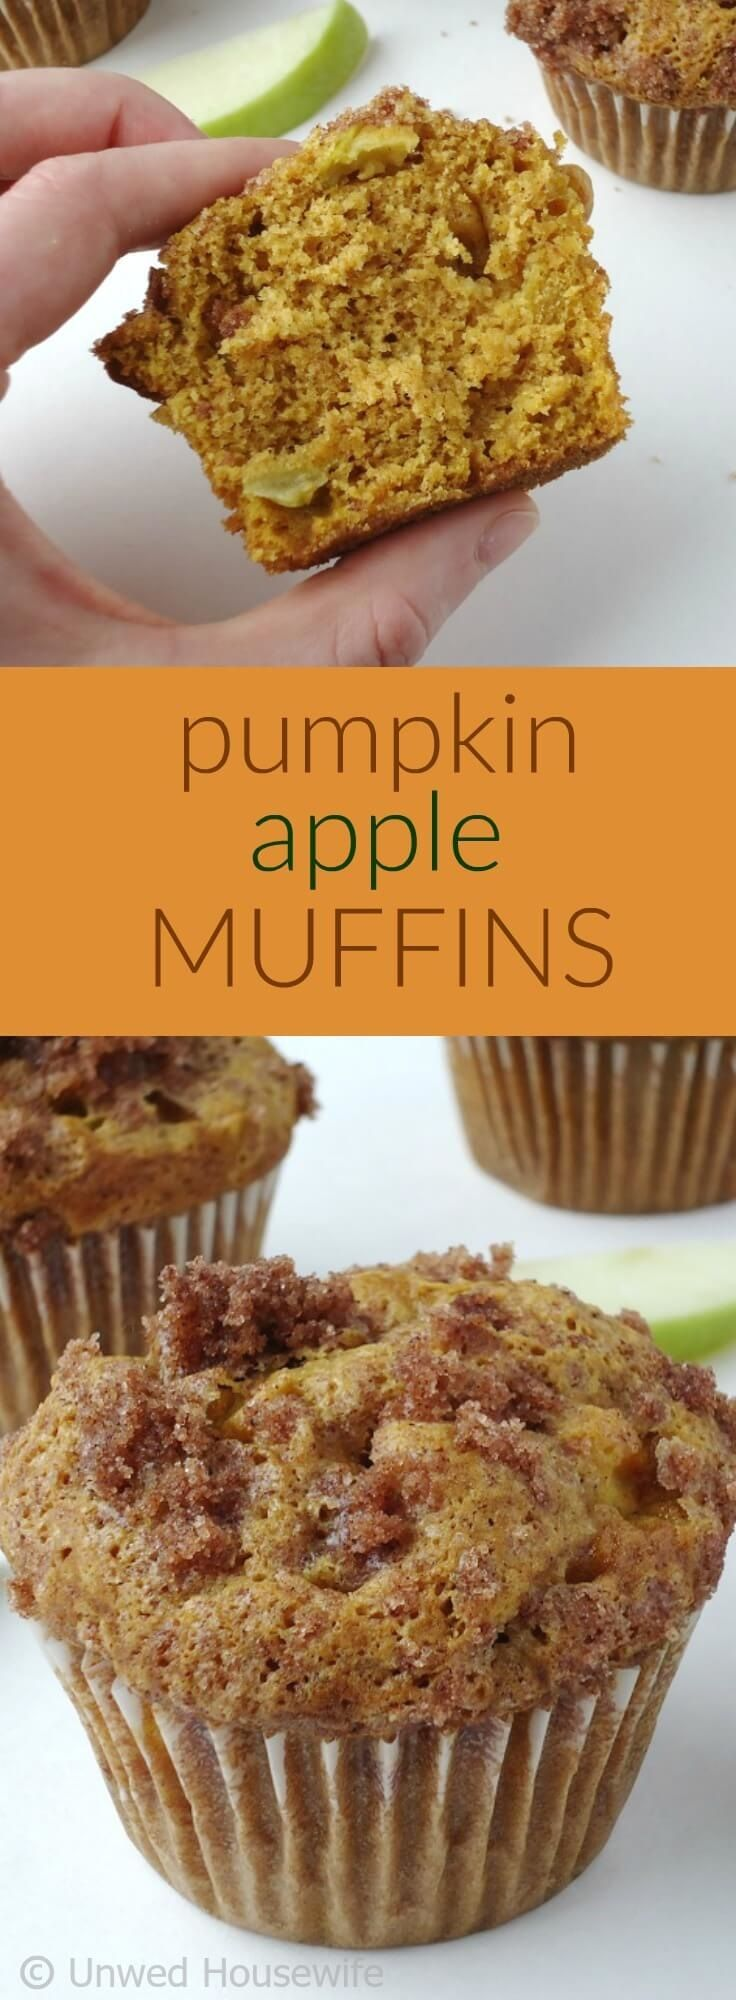 Pumpkin Apple Muffins | Unwed Housewife | These pumpkin apple muffins are the…